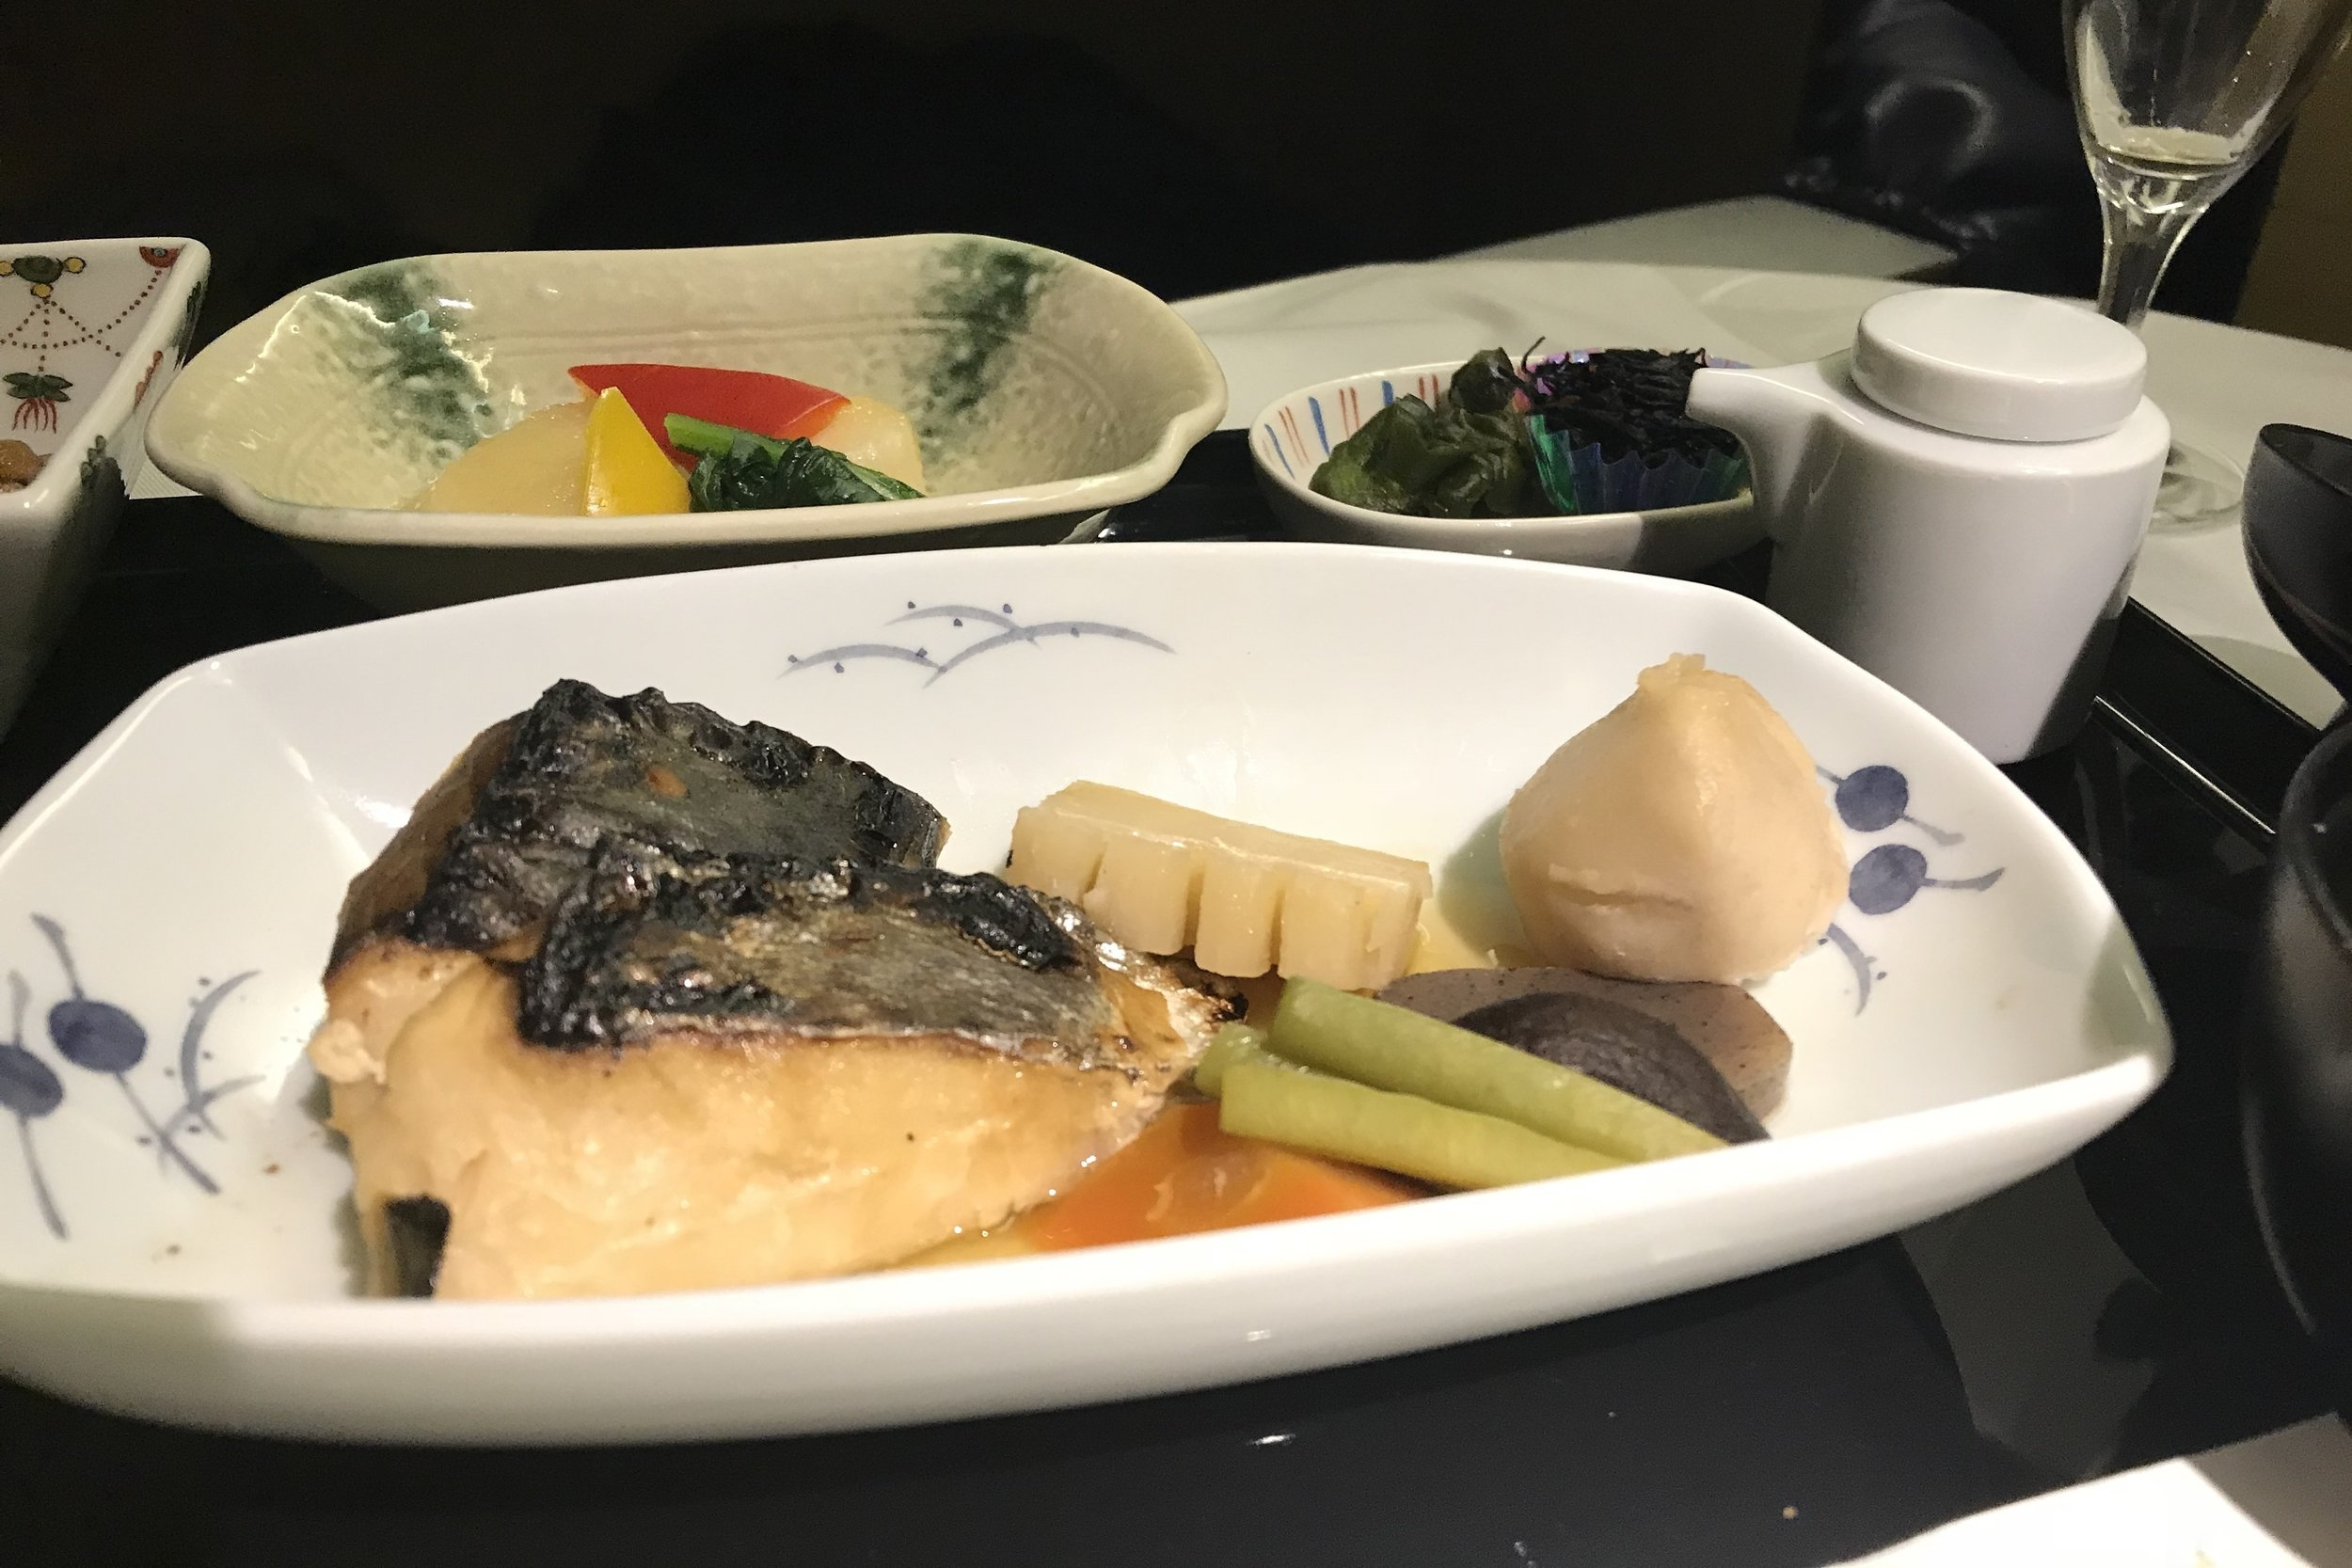 ANA First Class – Miso-grilled Spanish mackerel